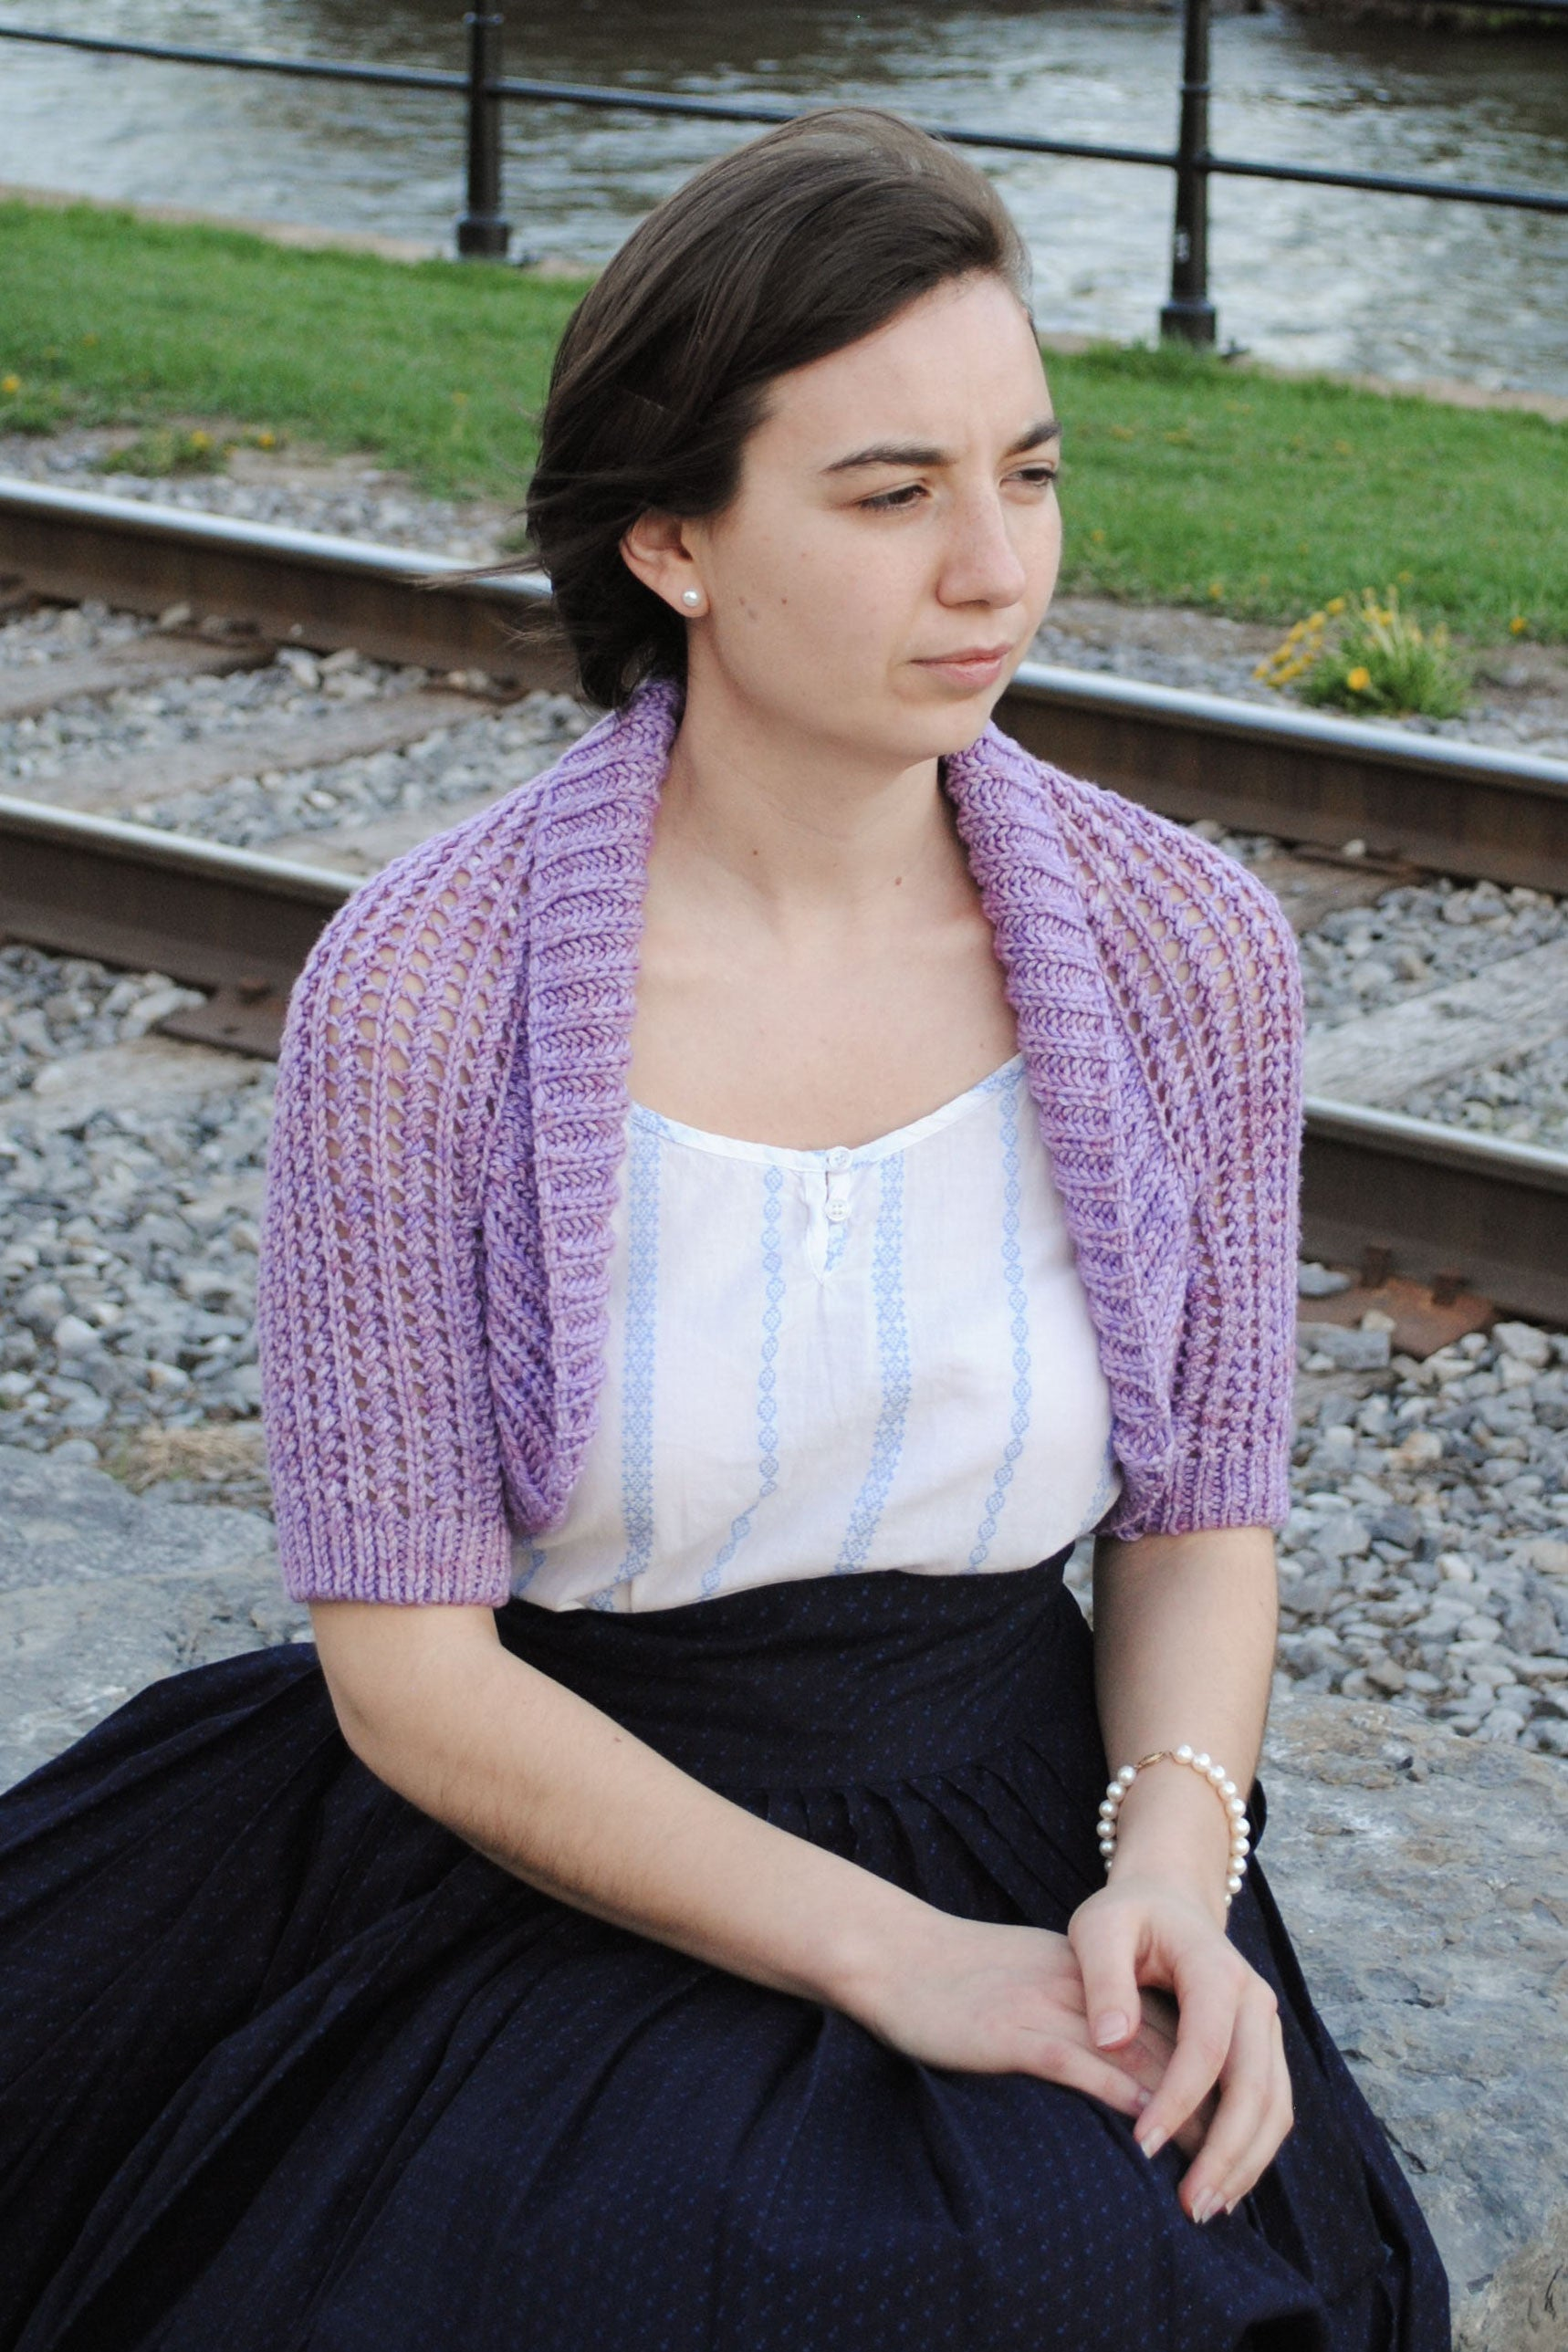 Vintage shrug knitting pattern with shawl collar